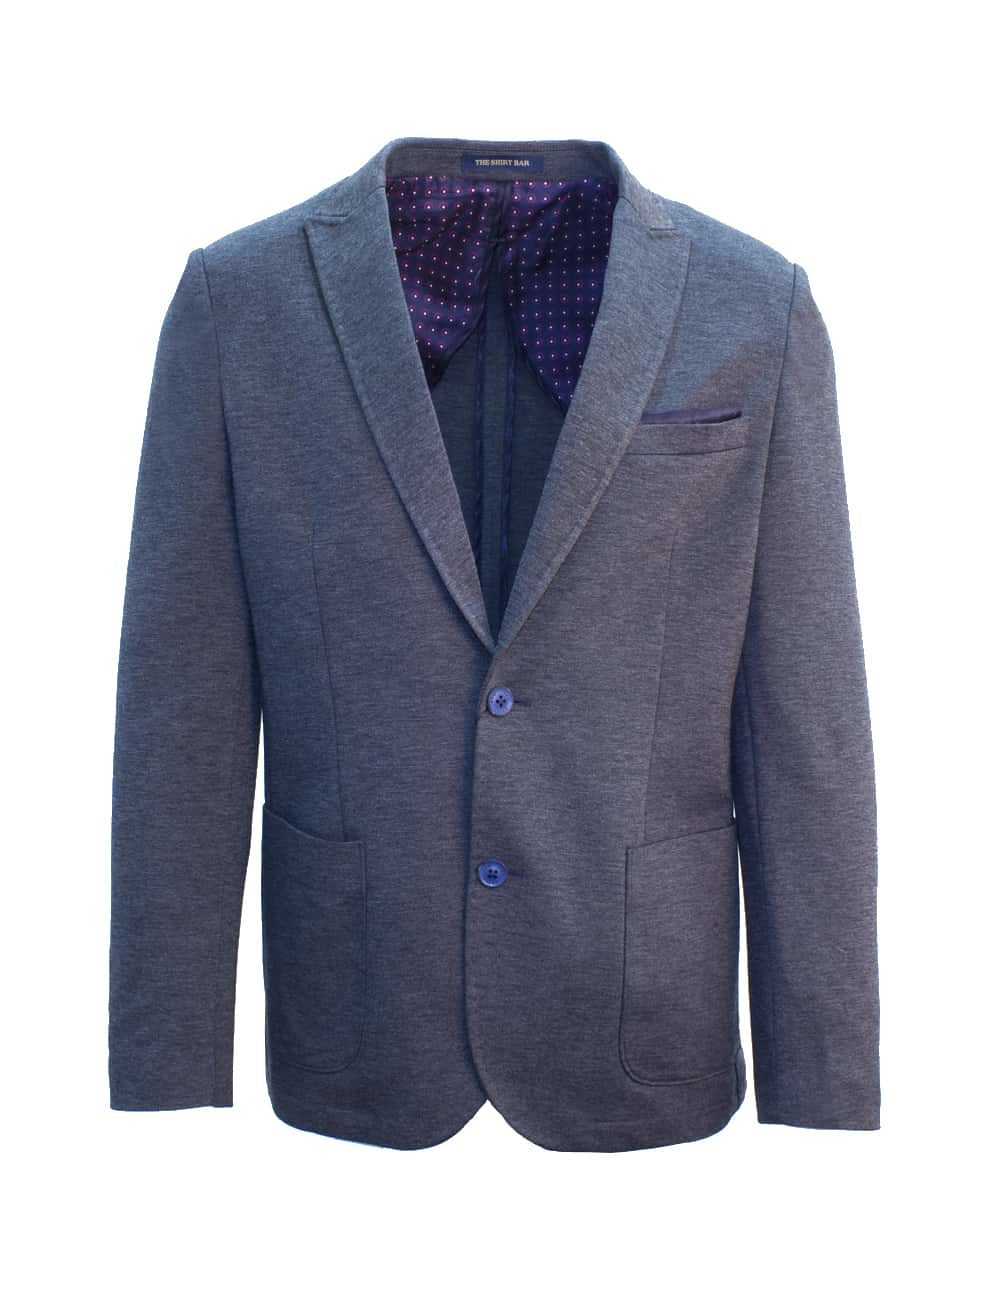 Slim Fit Charcoal Grey Knitted Blazer - B1B3.2